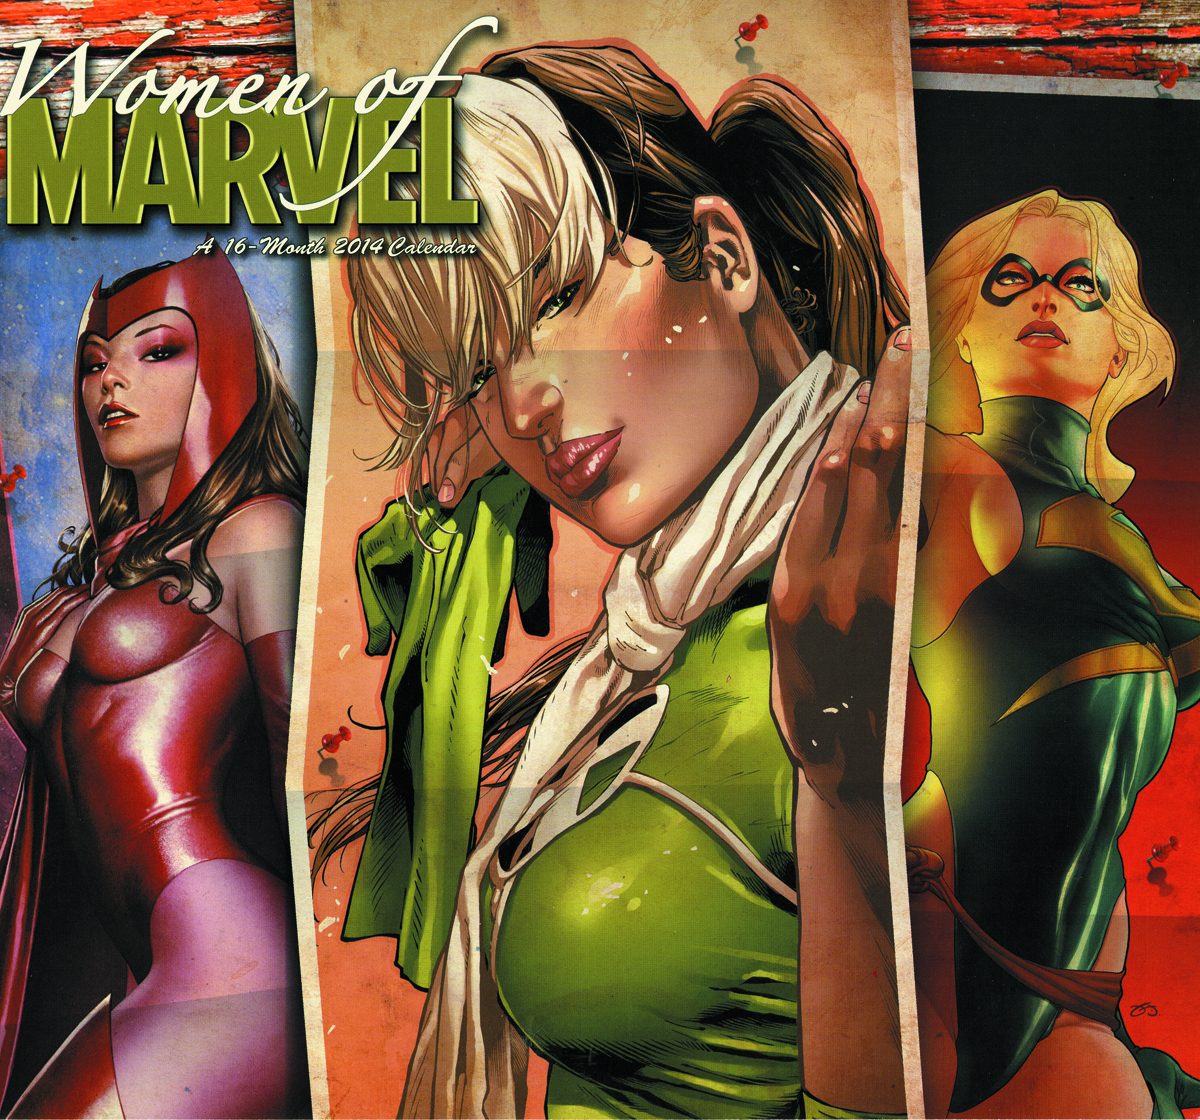 WOMEN OF MARVEL 2014 16 MONTH WALL CAL